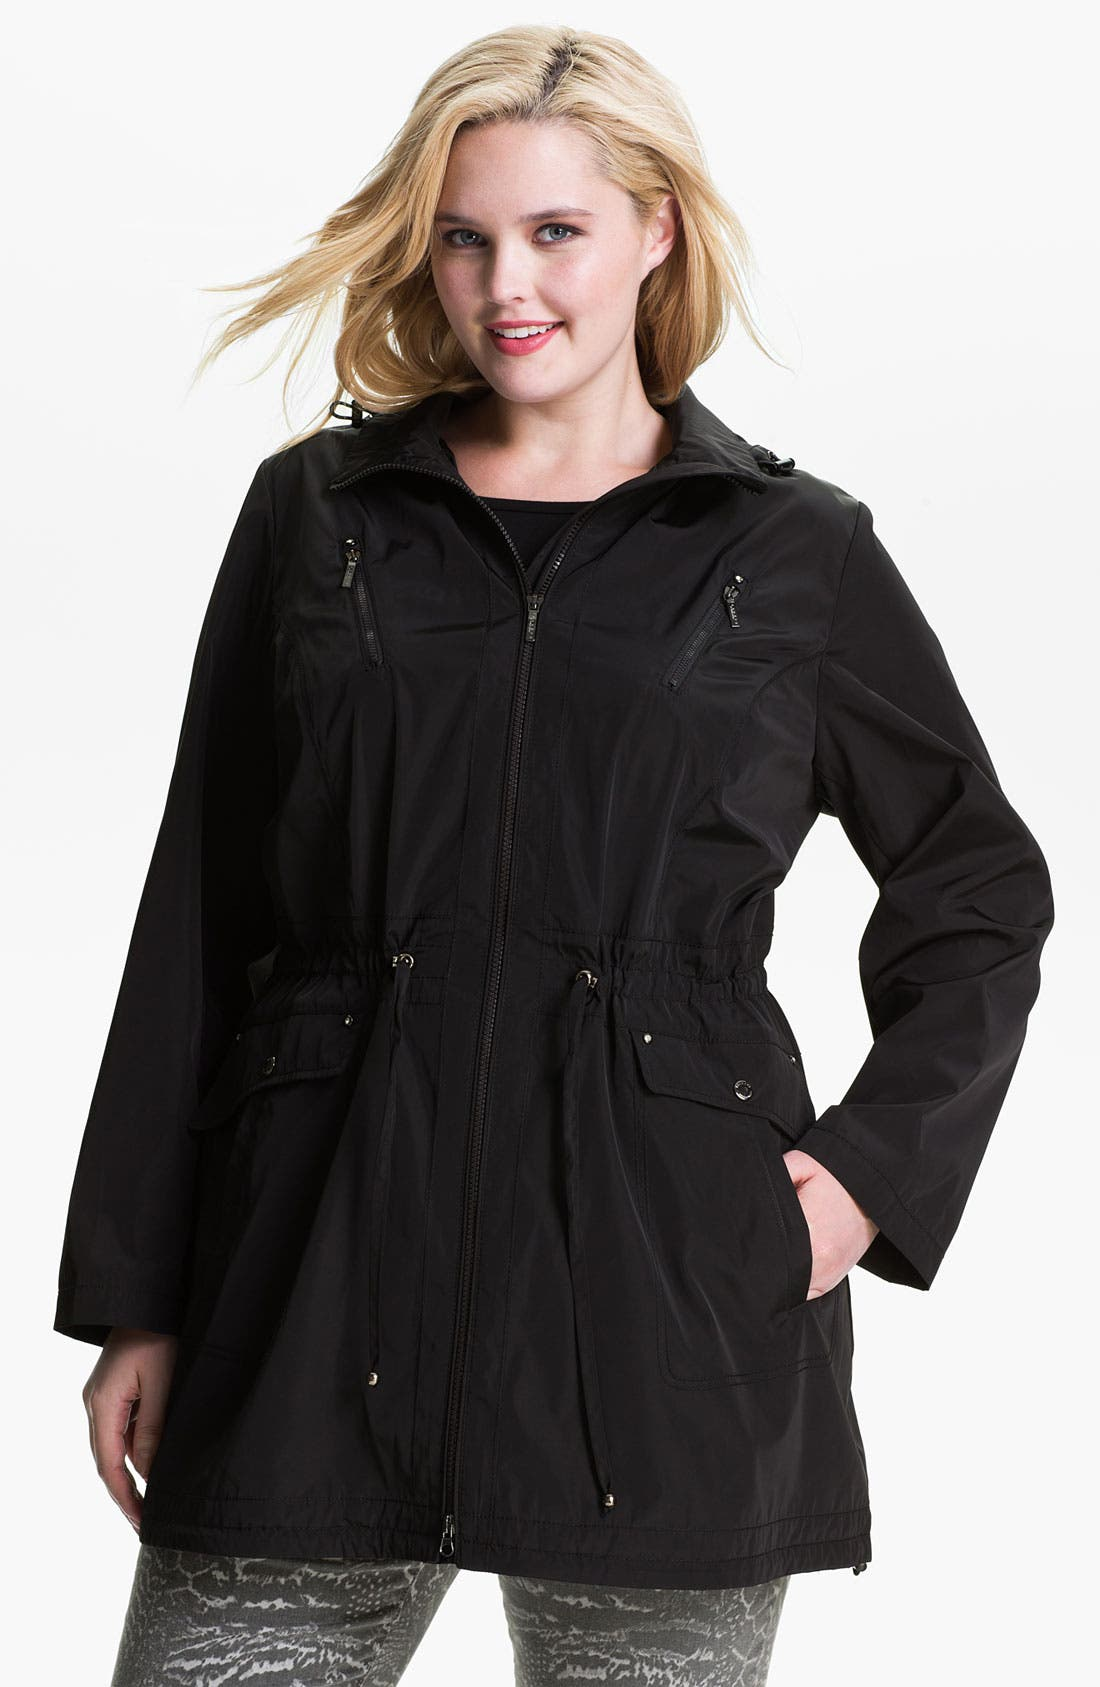 Alternate Image 1 Selected - Laundry by Shelli Segal Packable Anorak (Plus)